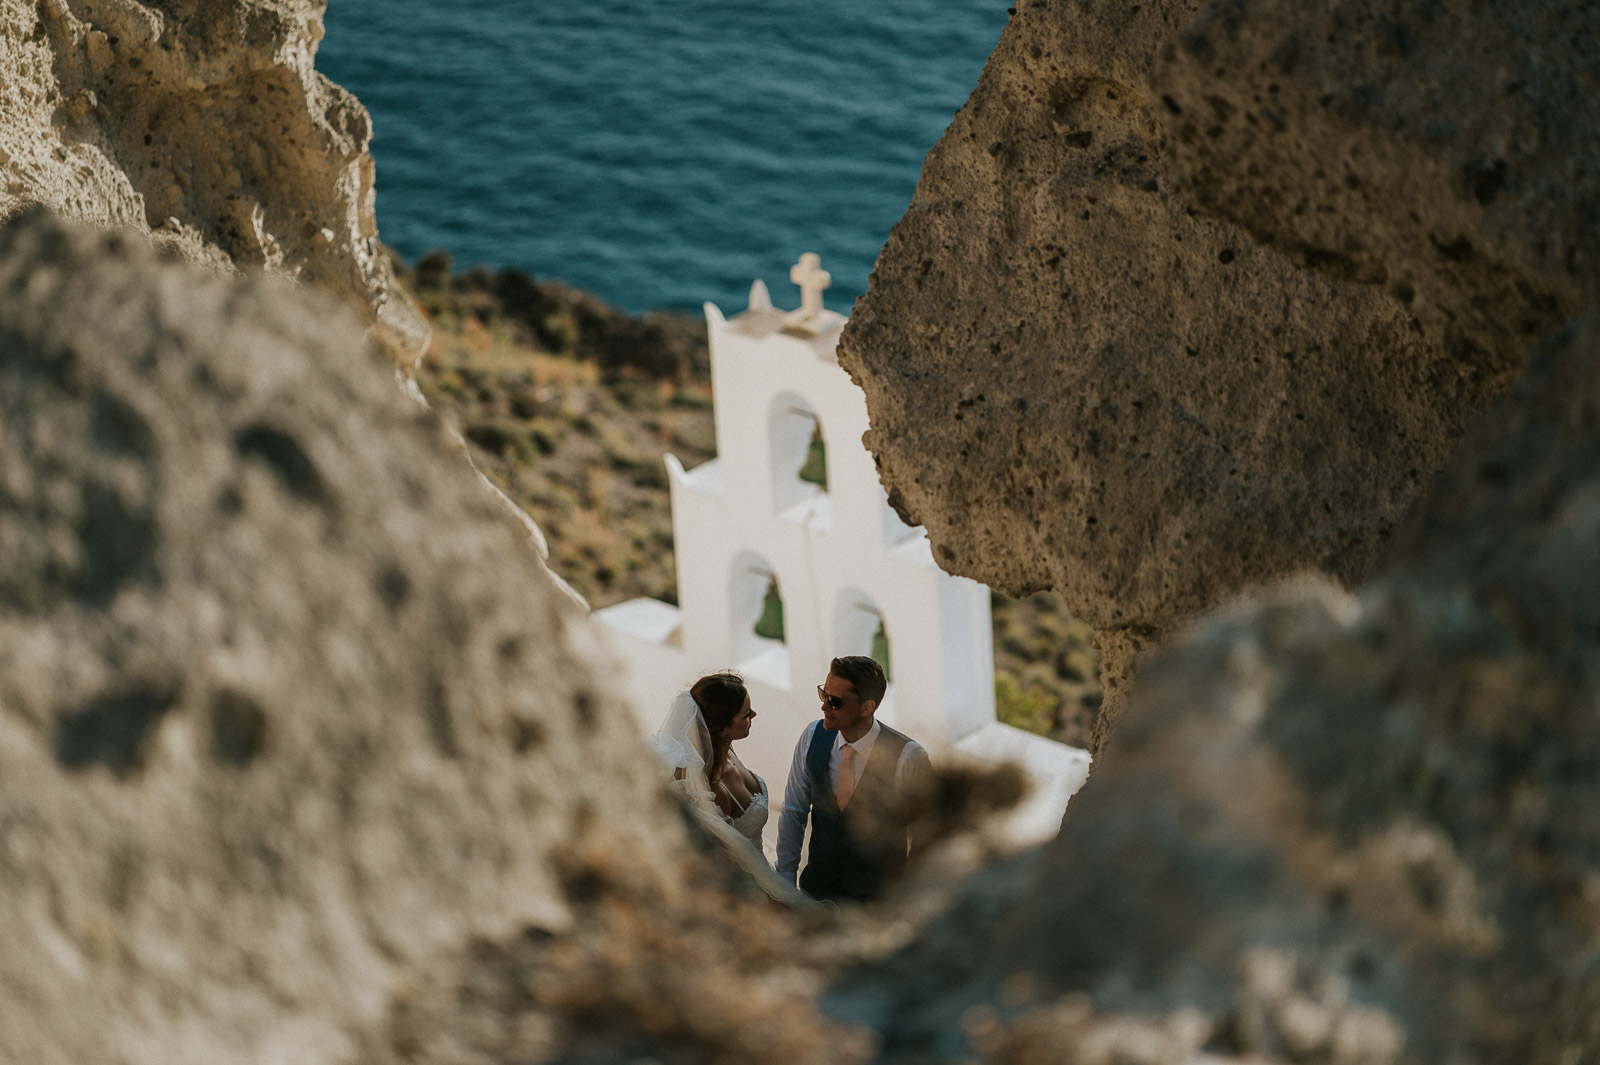 Santorini-Wedding-Photographer-Greece-Destination-Weddings-Mait-Juriado-M&J-Studios-069